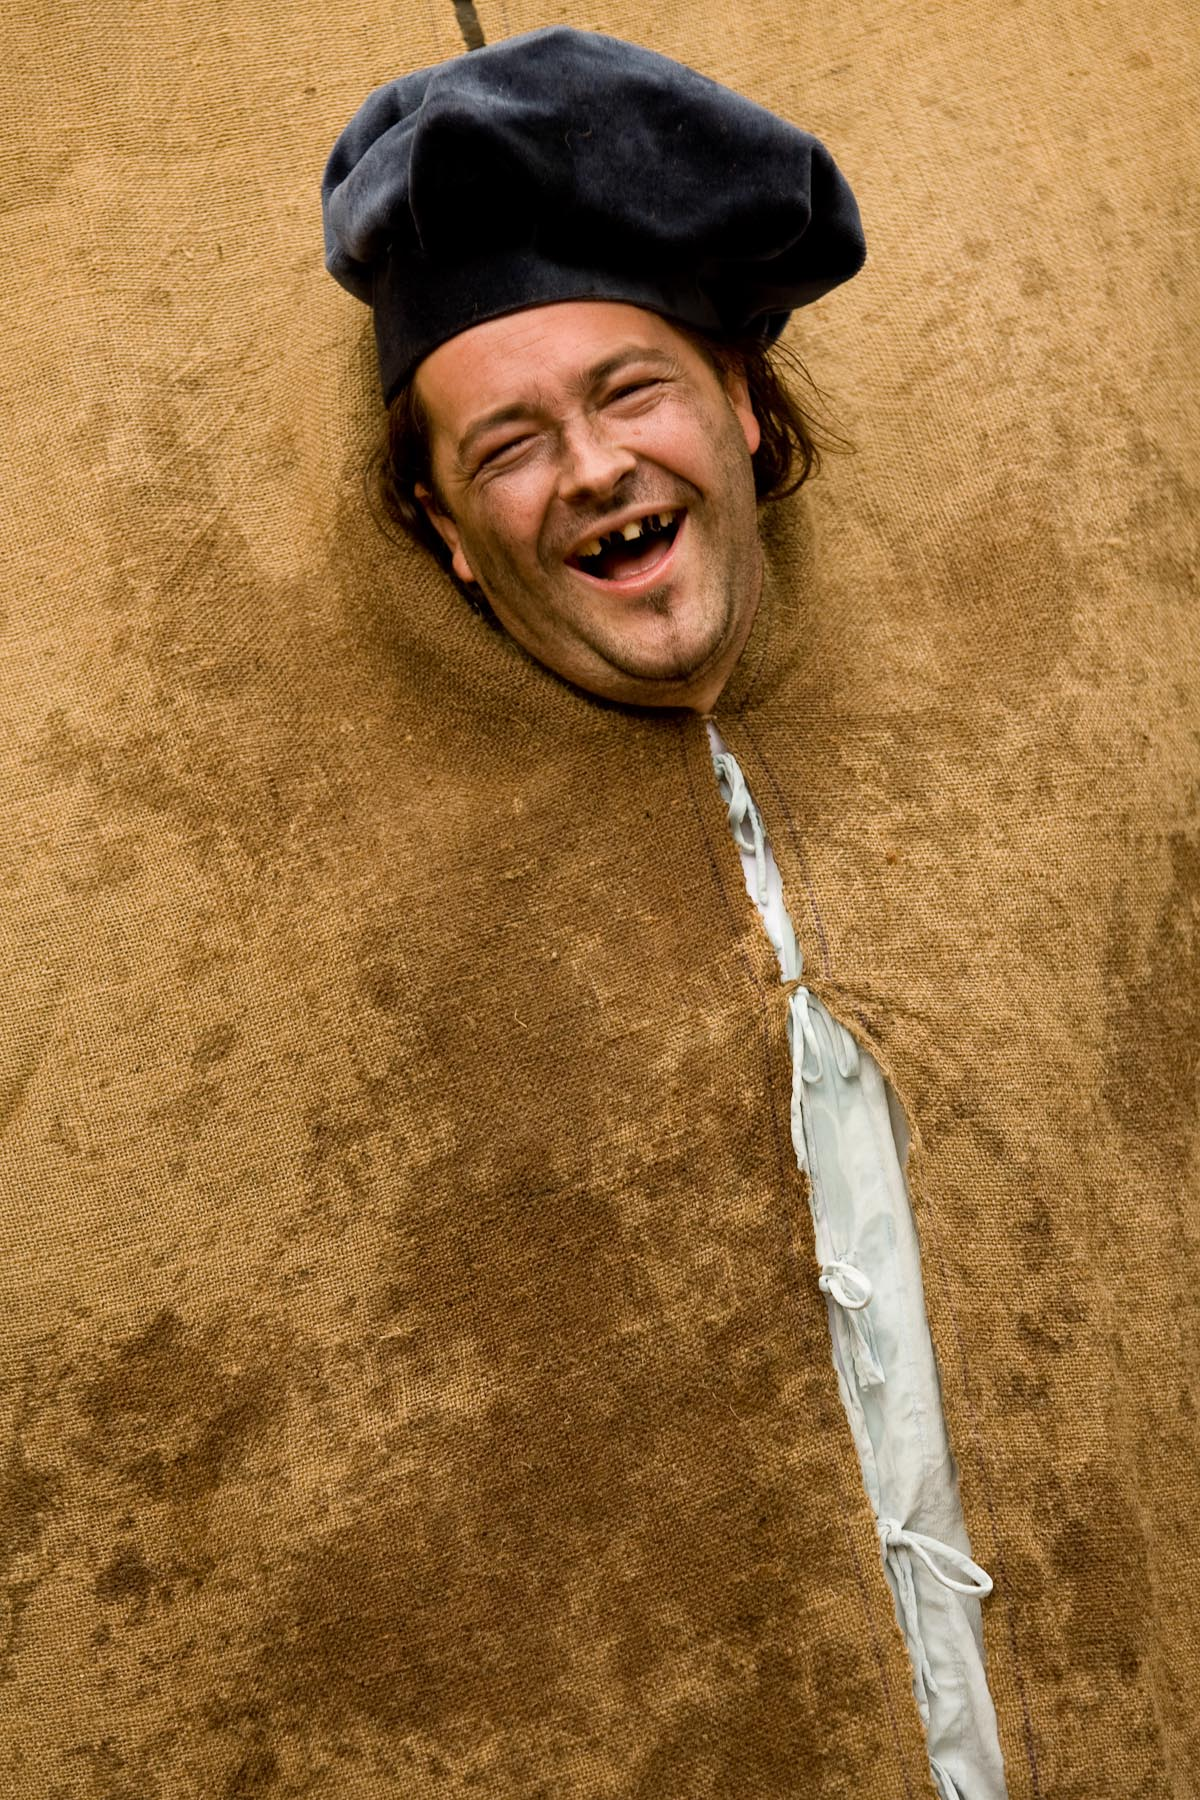 A buffoon participates in a play where people must hit his face with a wet sponge in Skofja Loka, Slovenia, on June 23, 2007.